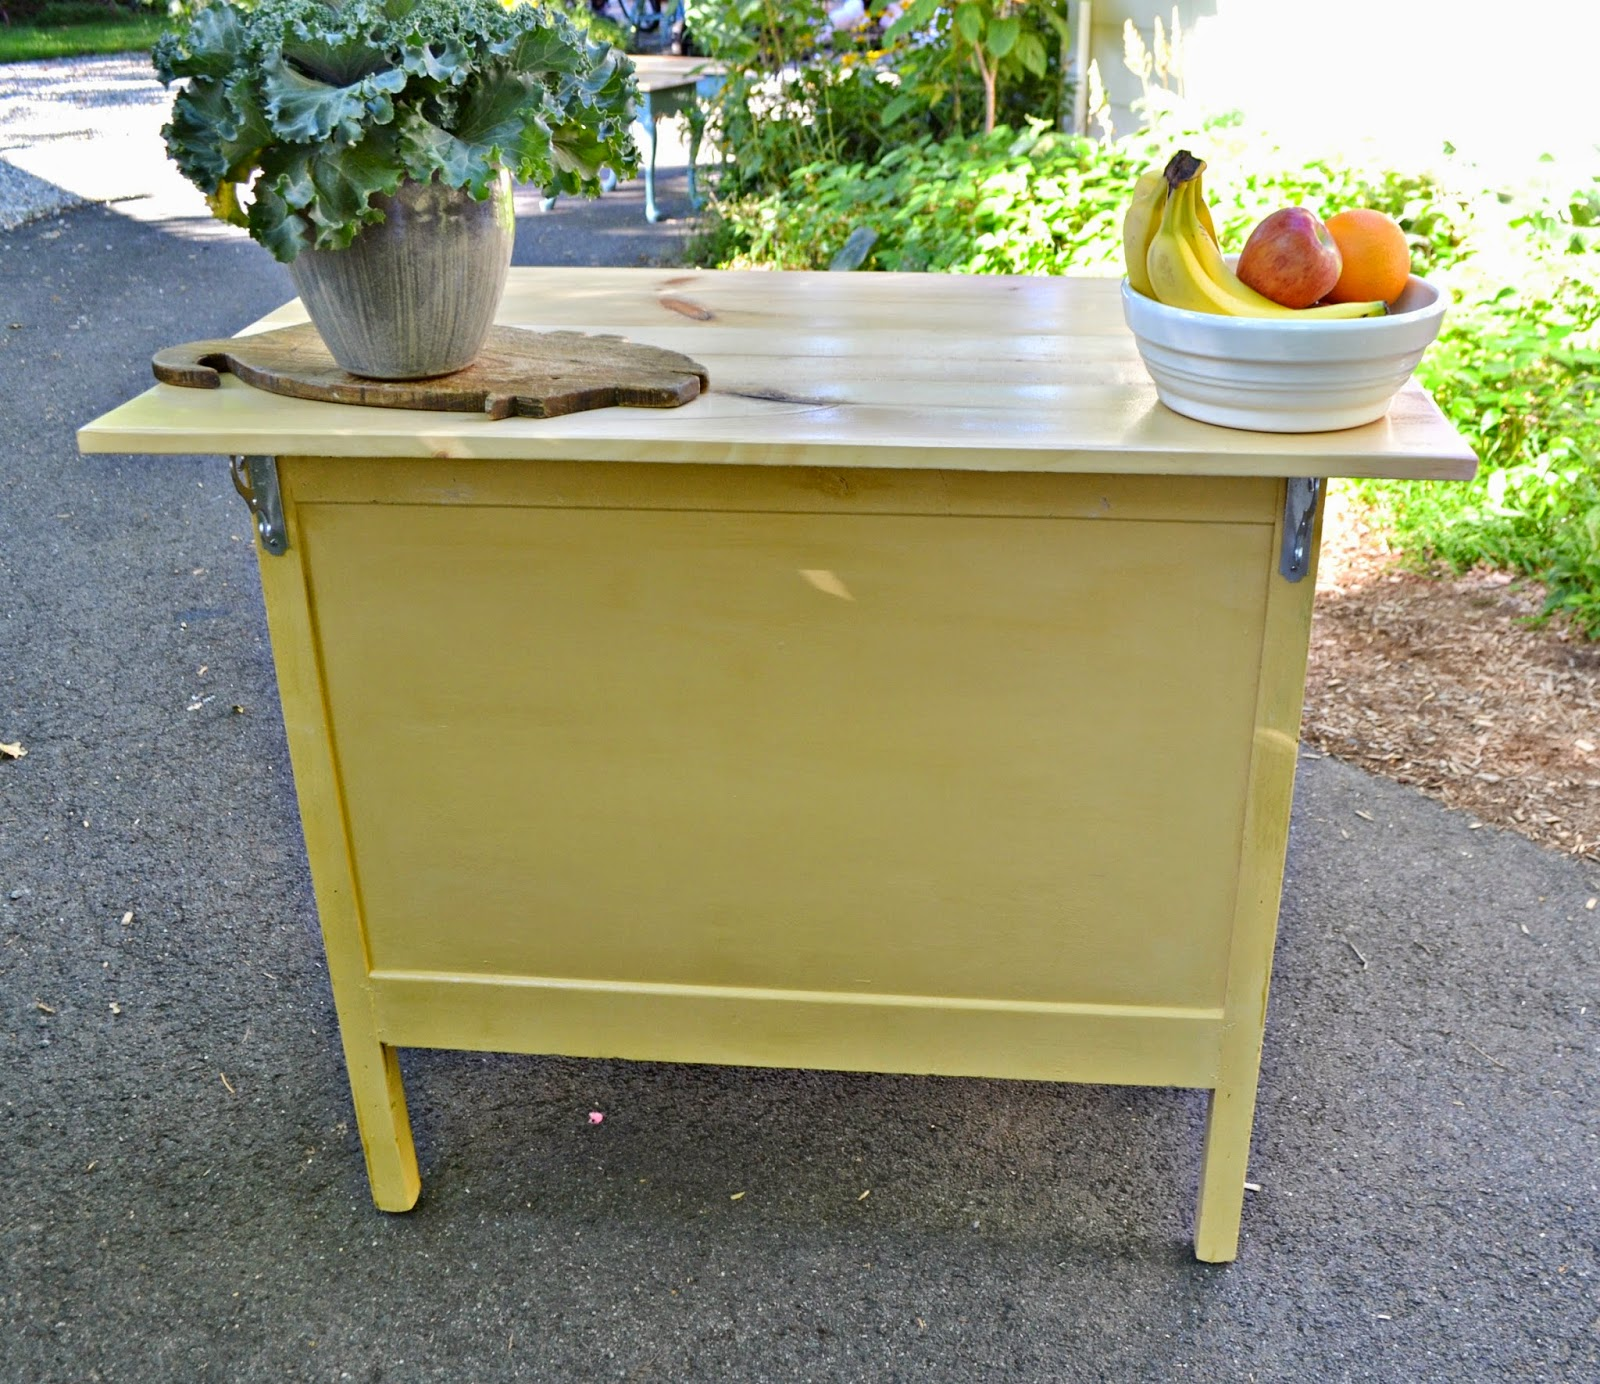 What Are The Shelf Supports On A Kitchen Island Called